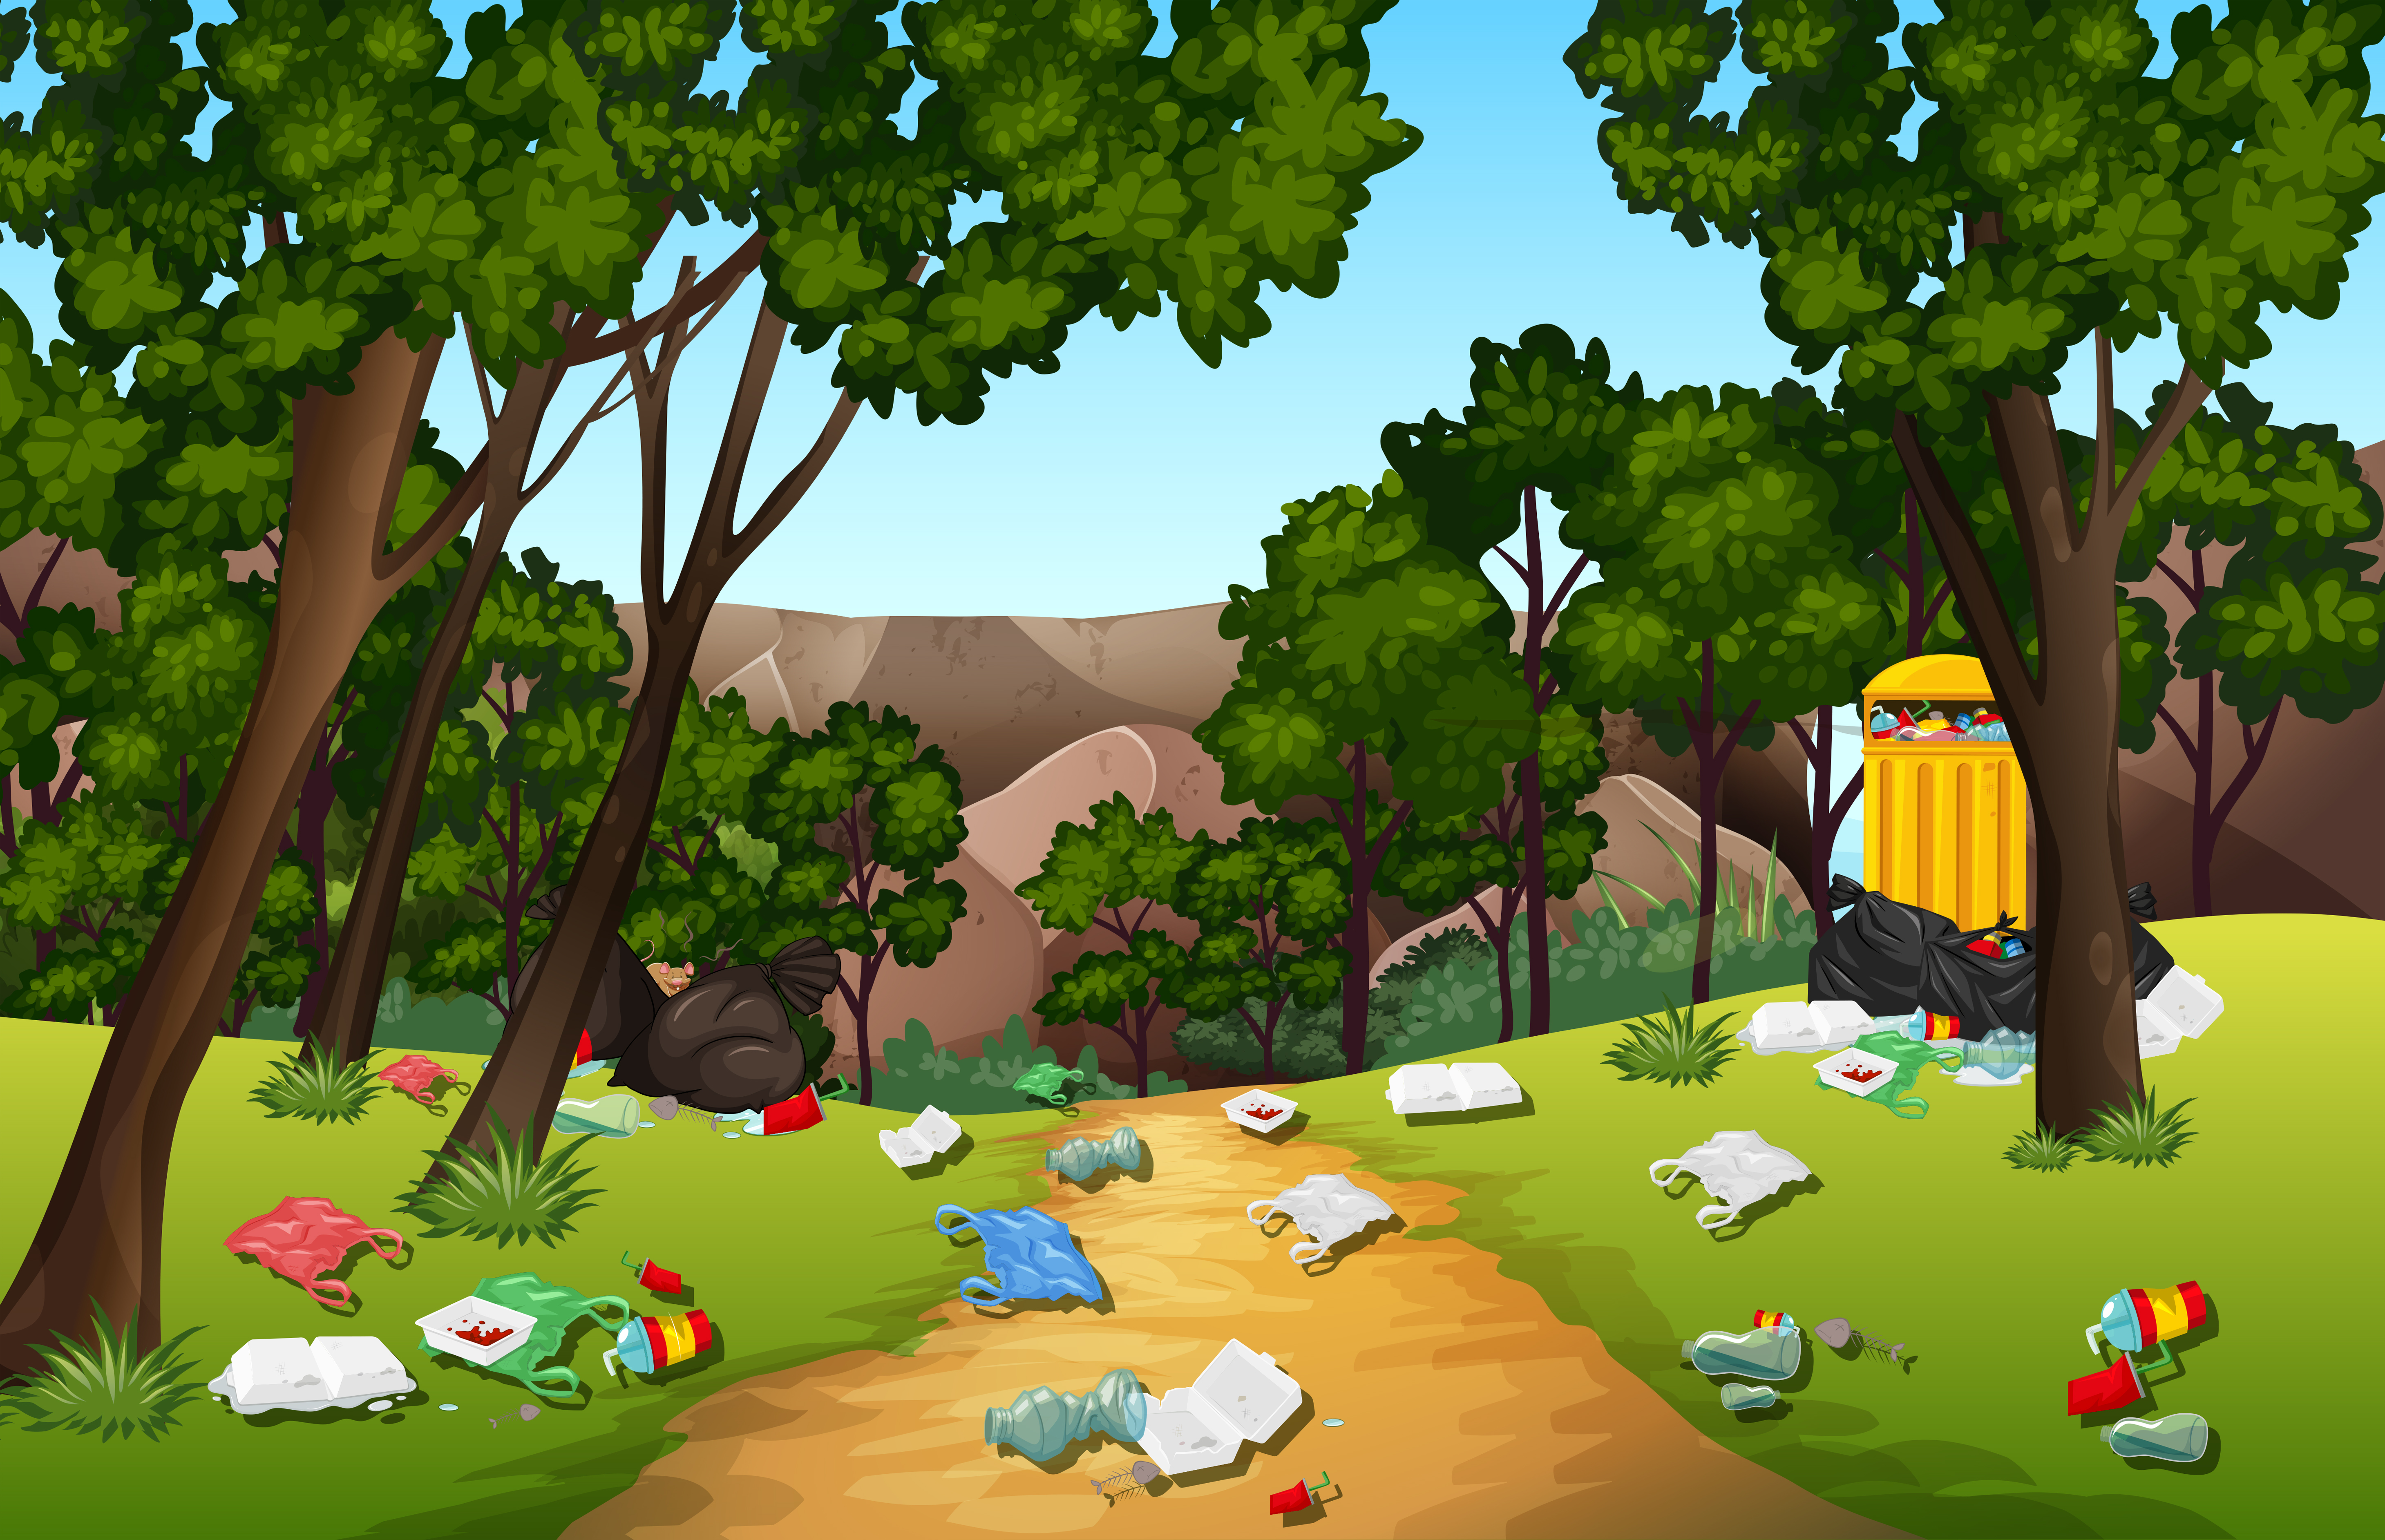 Litter in the nature park - Download Free Vectors, Clipart ...